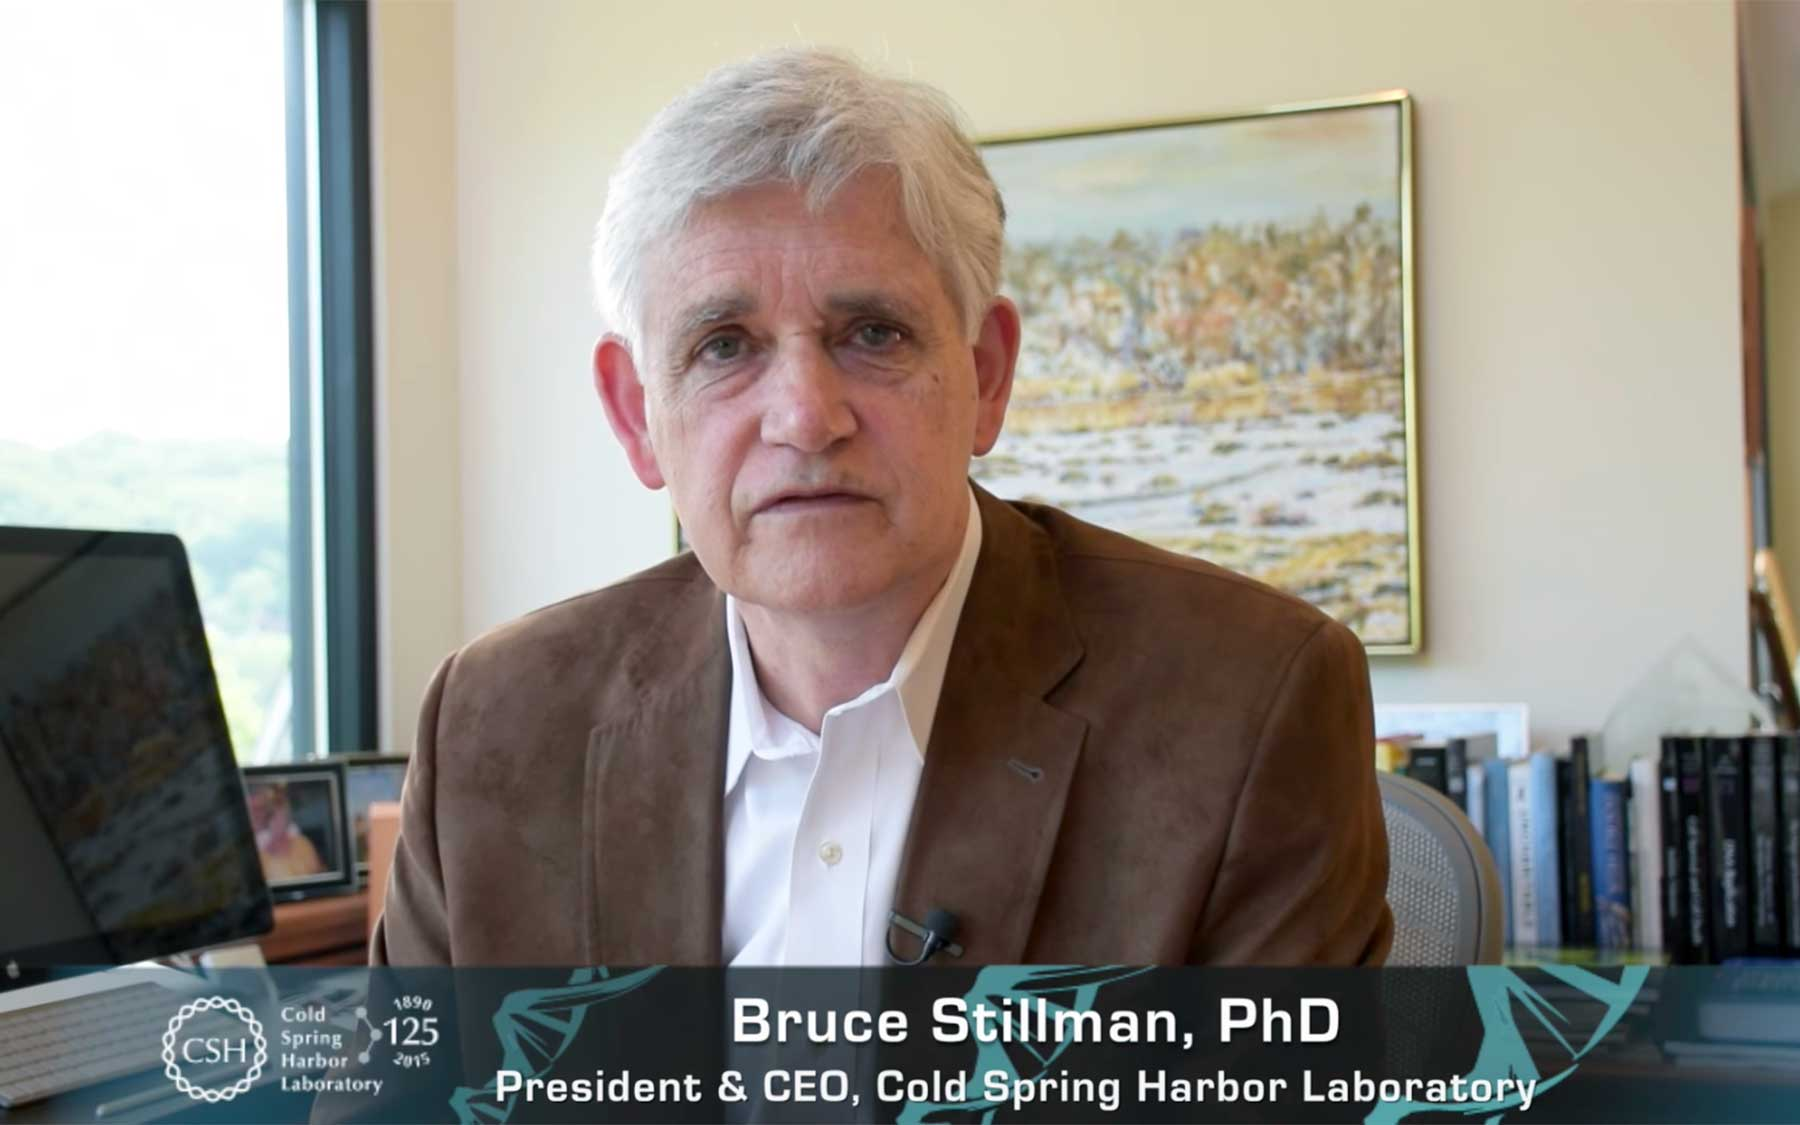 Bruce Stillman basic science needs your support